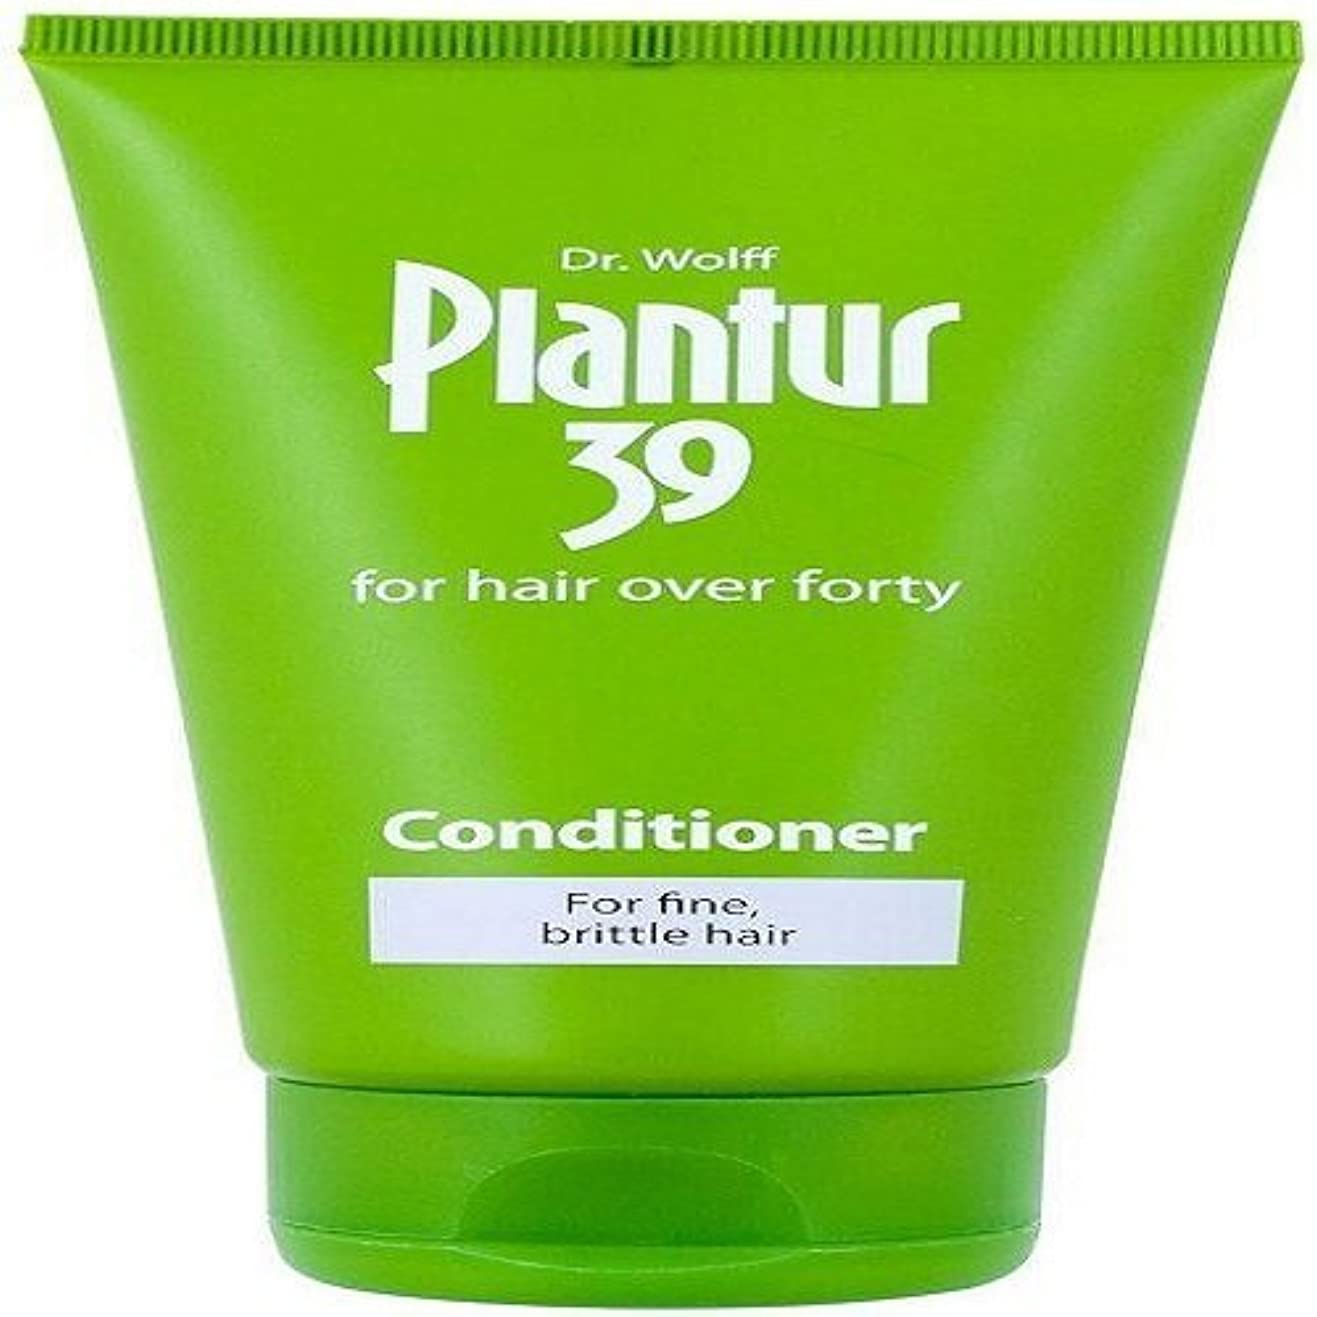 広まった前件首尾一貫したPlantur 39 150ml Fine & Brittle hair conditioner by Plantur